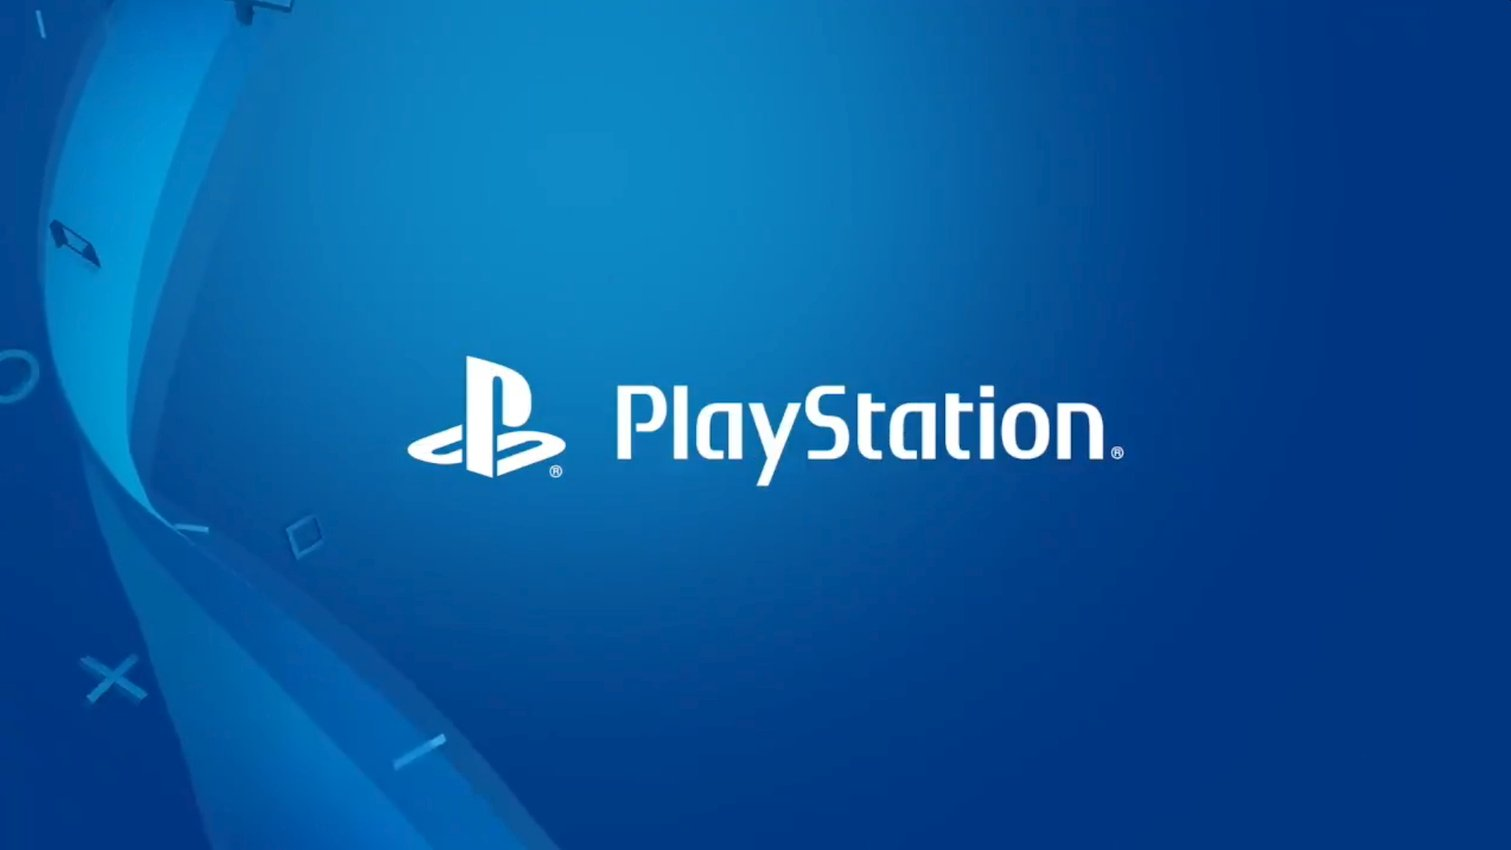 Sony PlayStation Investment Into New 'PC Business' Worth $50 Million Implies More Upcoming Titles